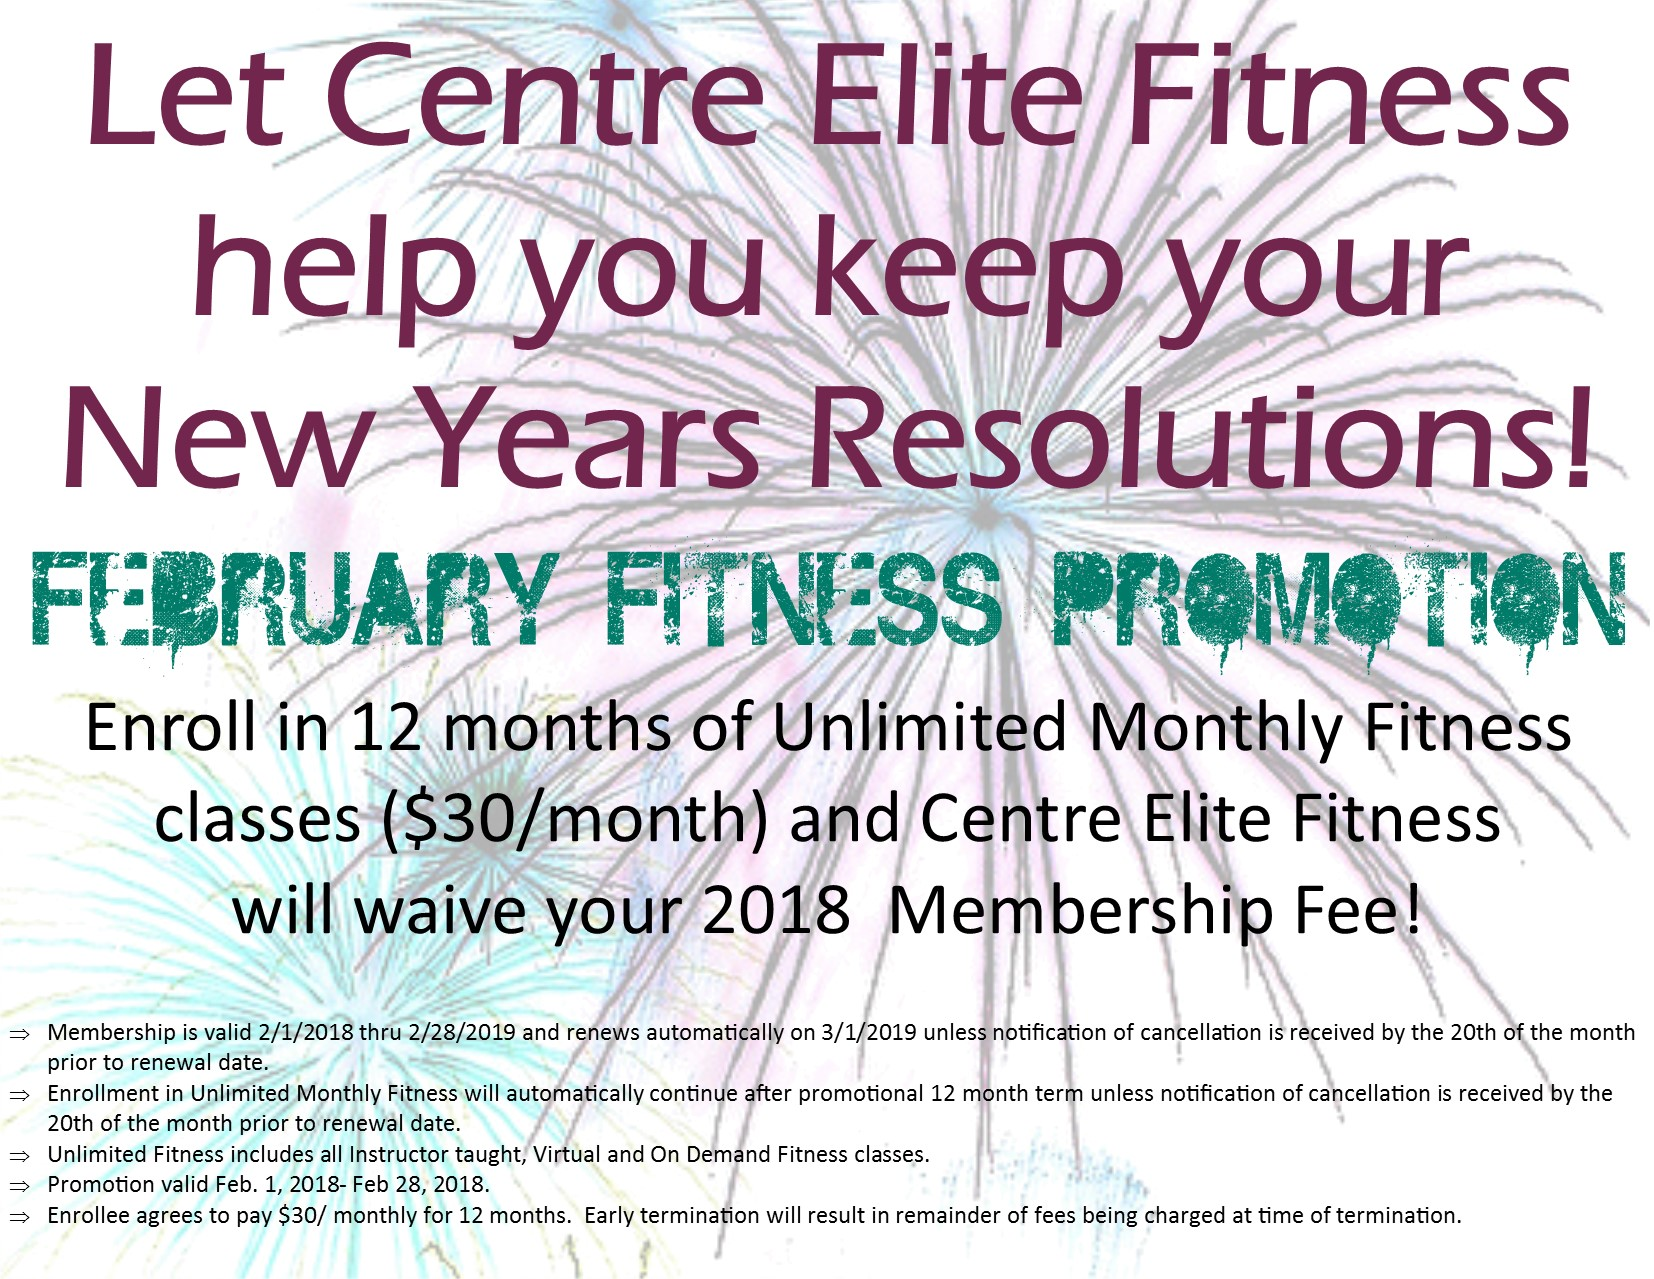 Call us at 814-380-0894 or stop by the office for more information about Fitness Classes at Centre Elite! Sign up today for our February Fitness Promotion!